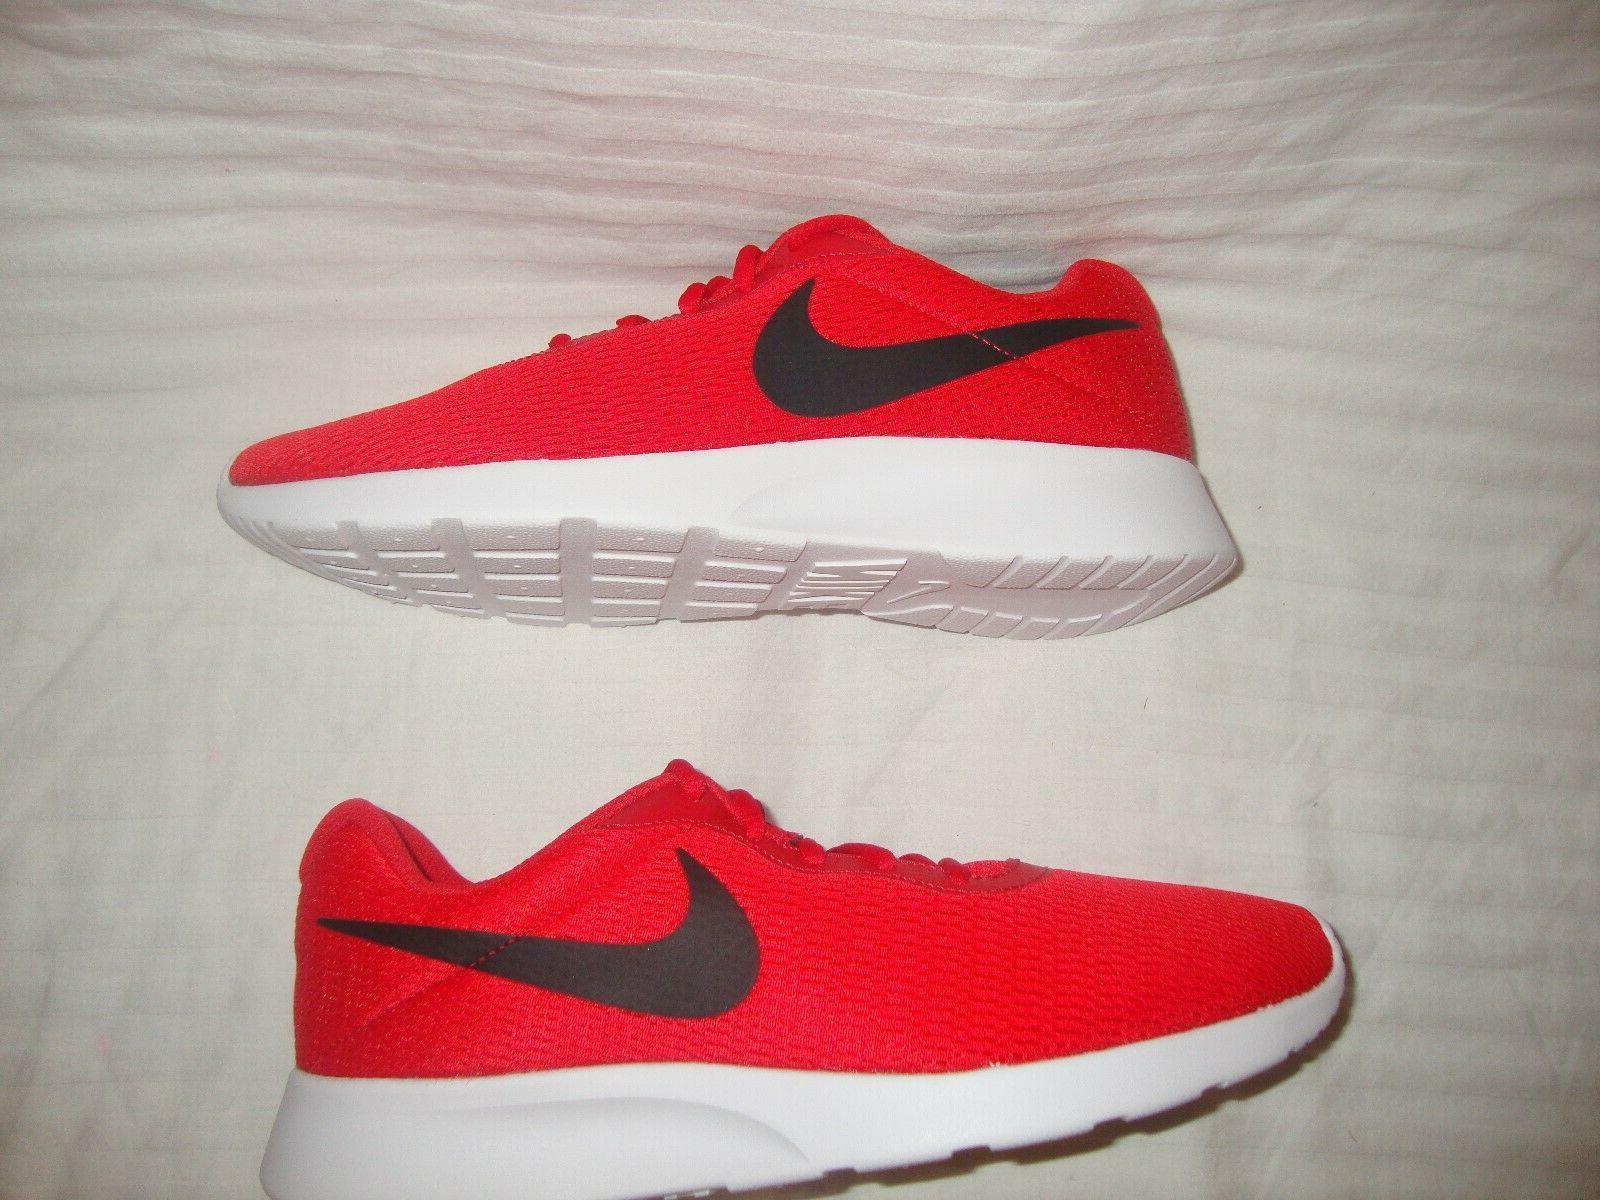 New Nike 812654-601 Sneakers Size